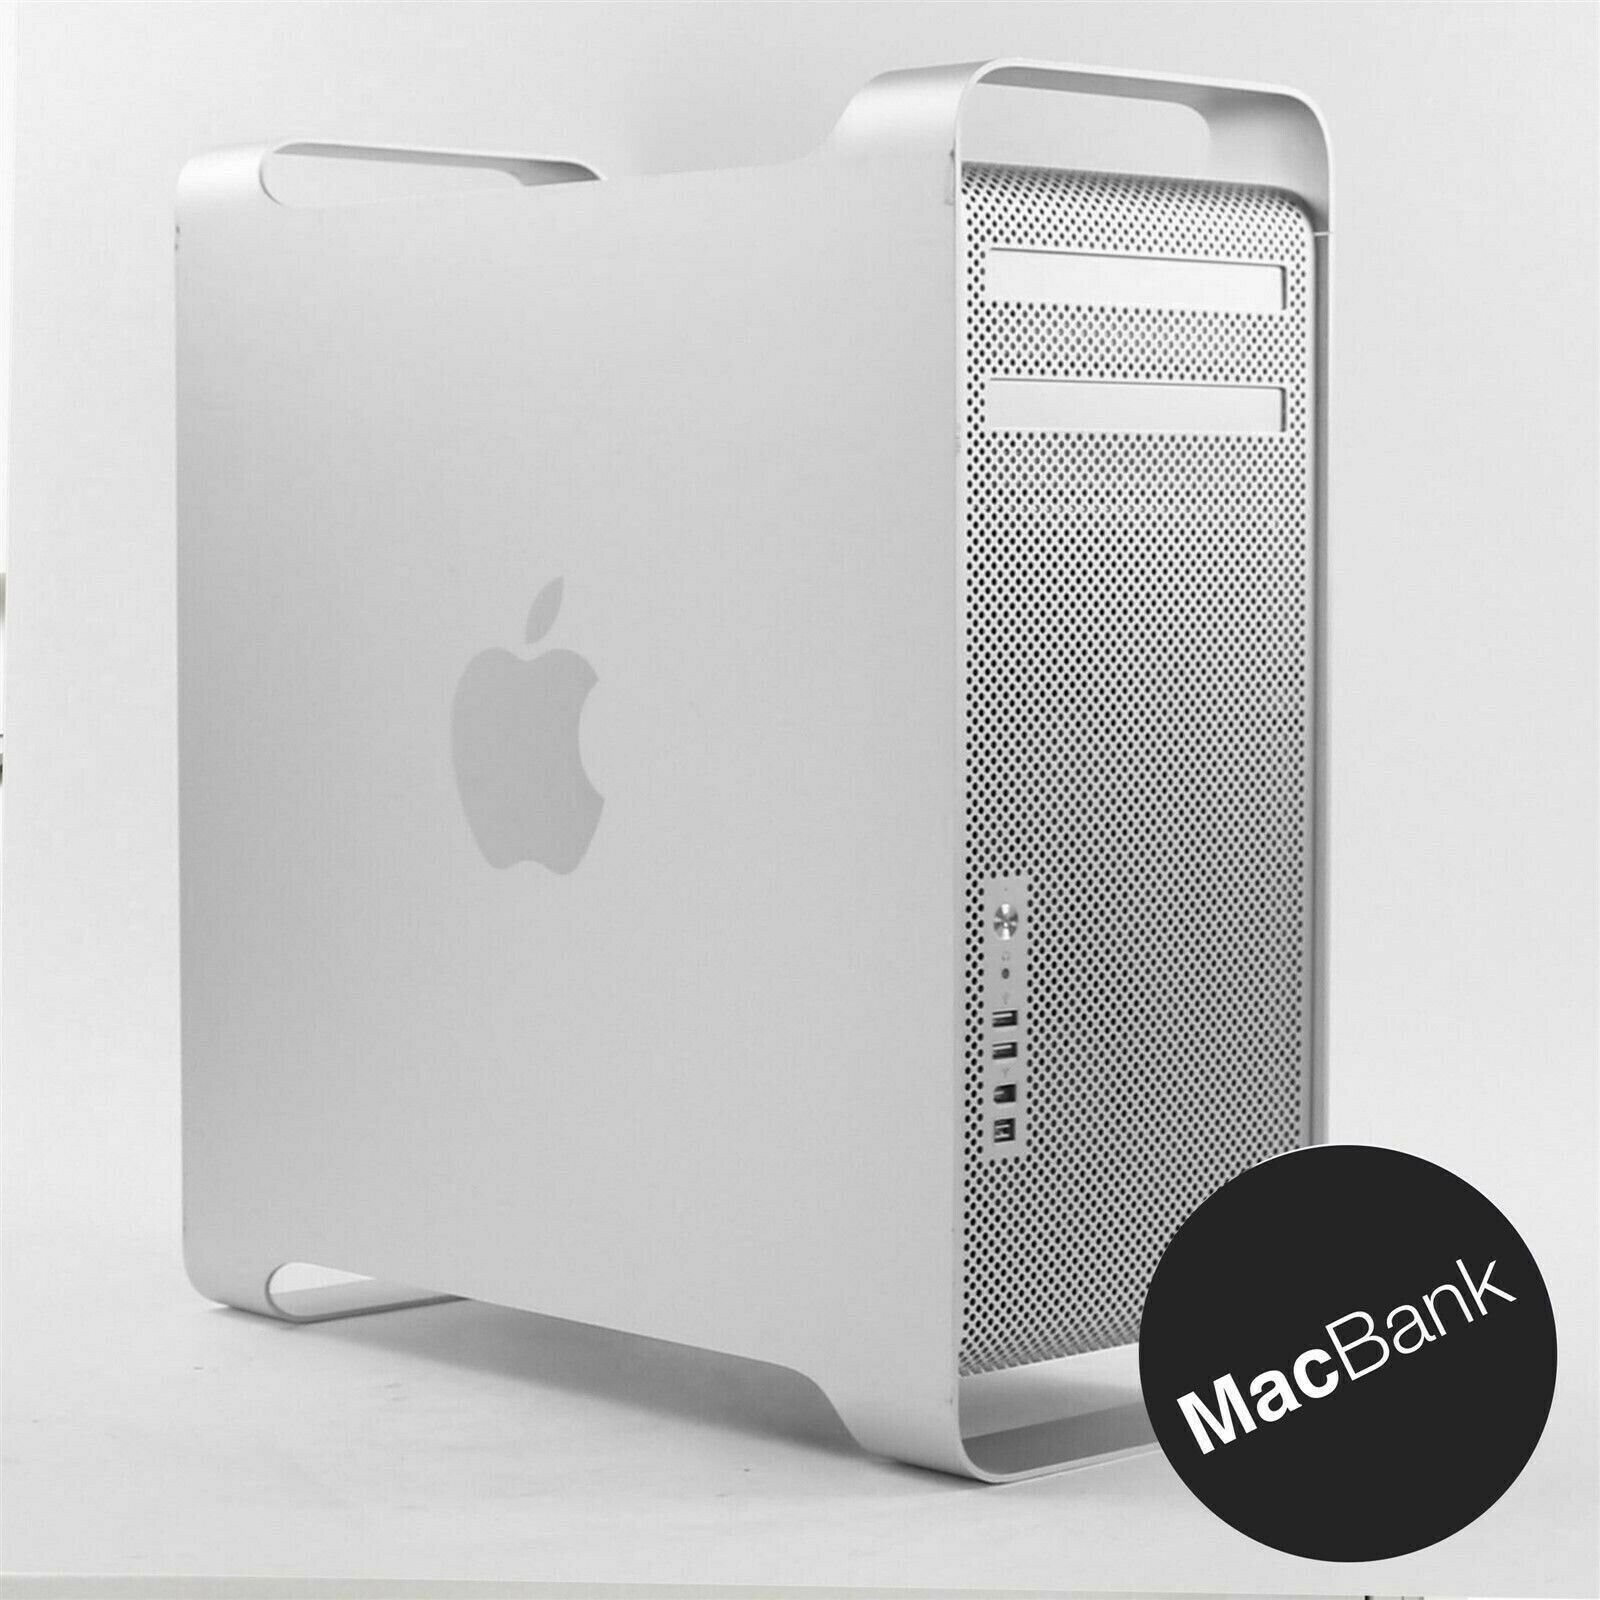 Protools 10.3 waves Plugins Package And More With A Long Standing Reputation Apple Mac Pro 2010 6-core 2.8